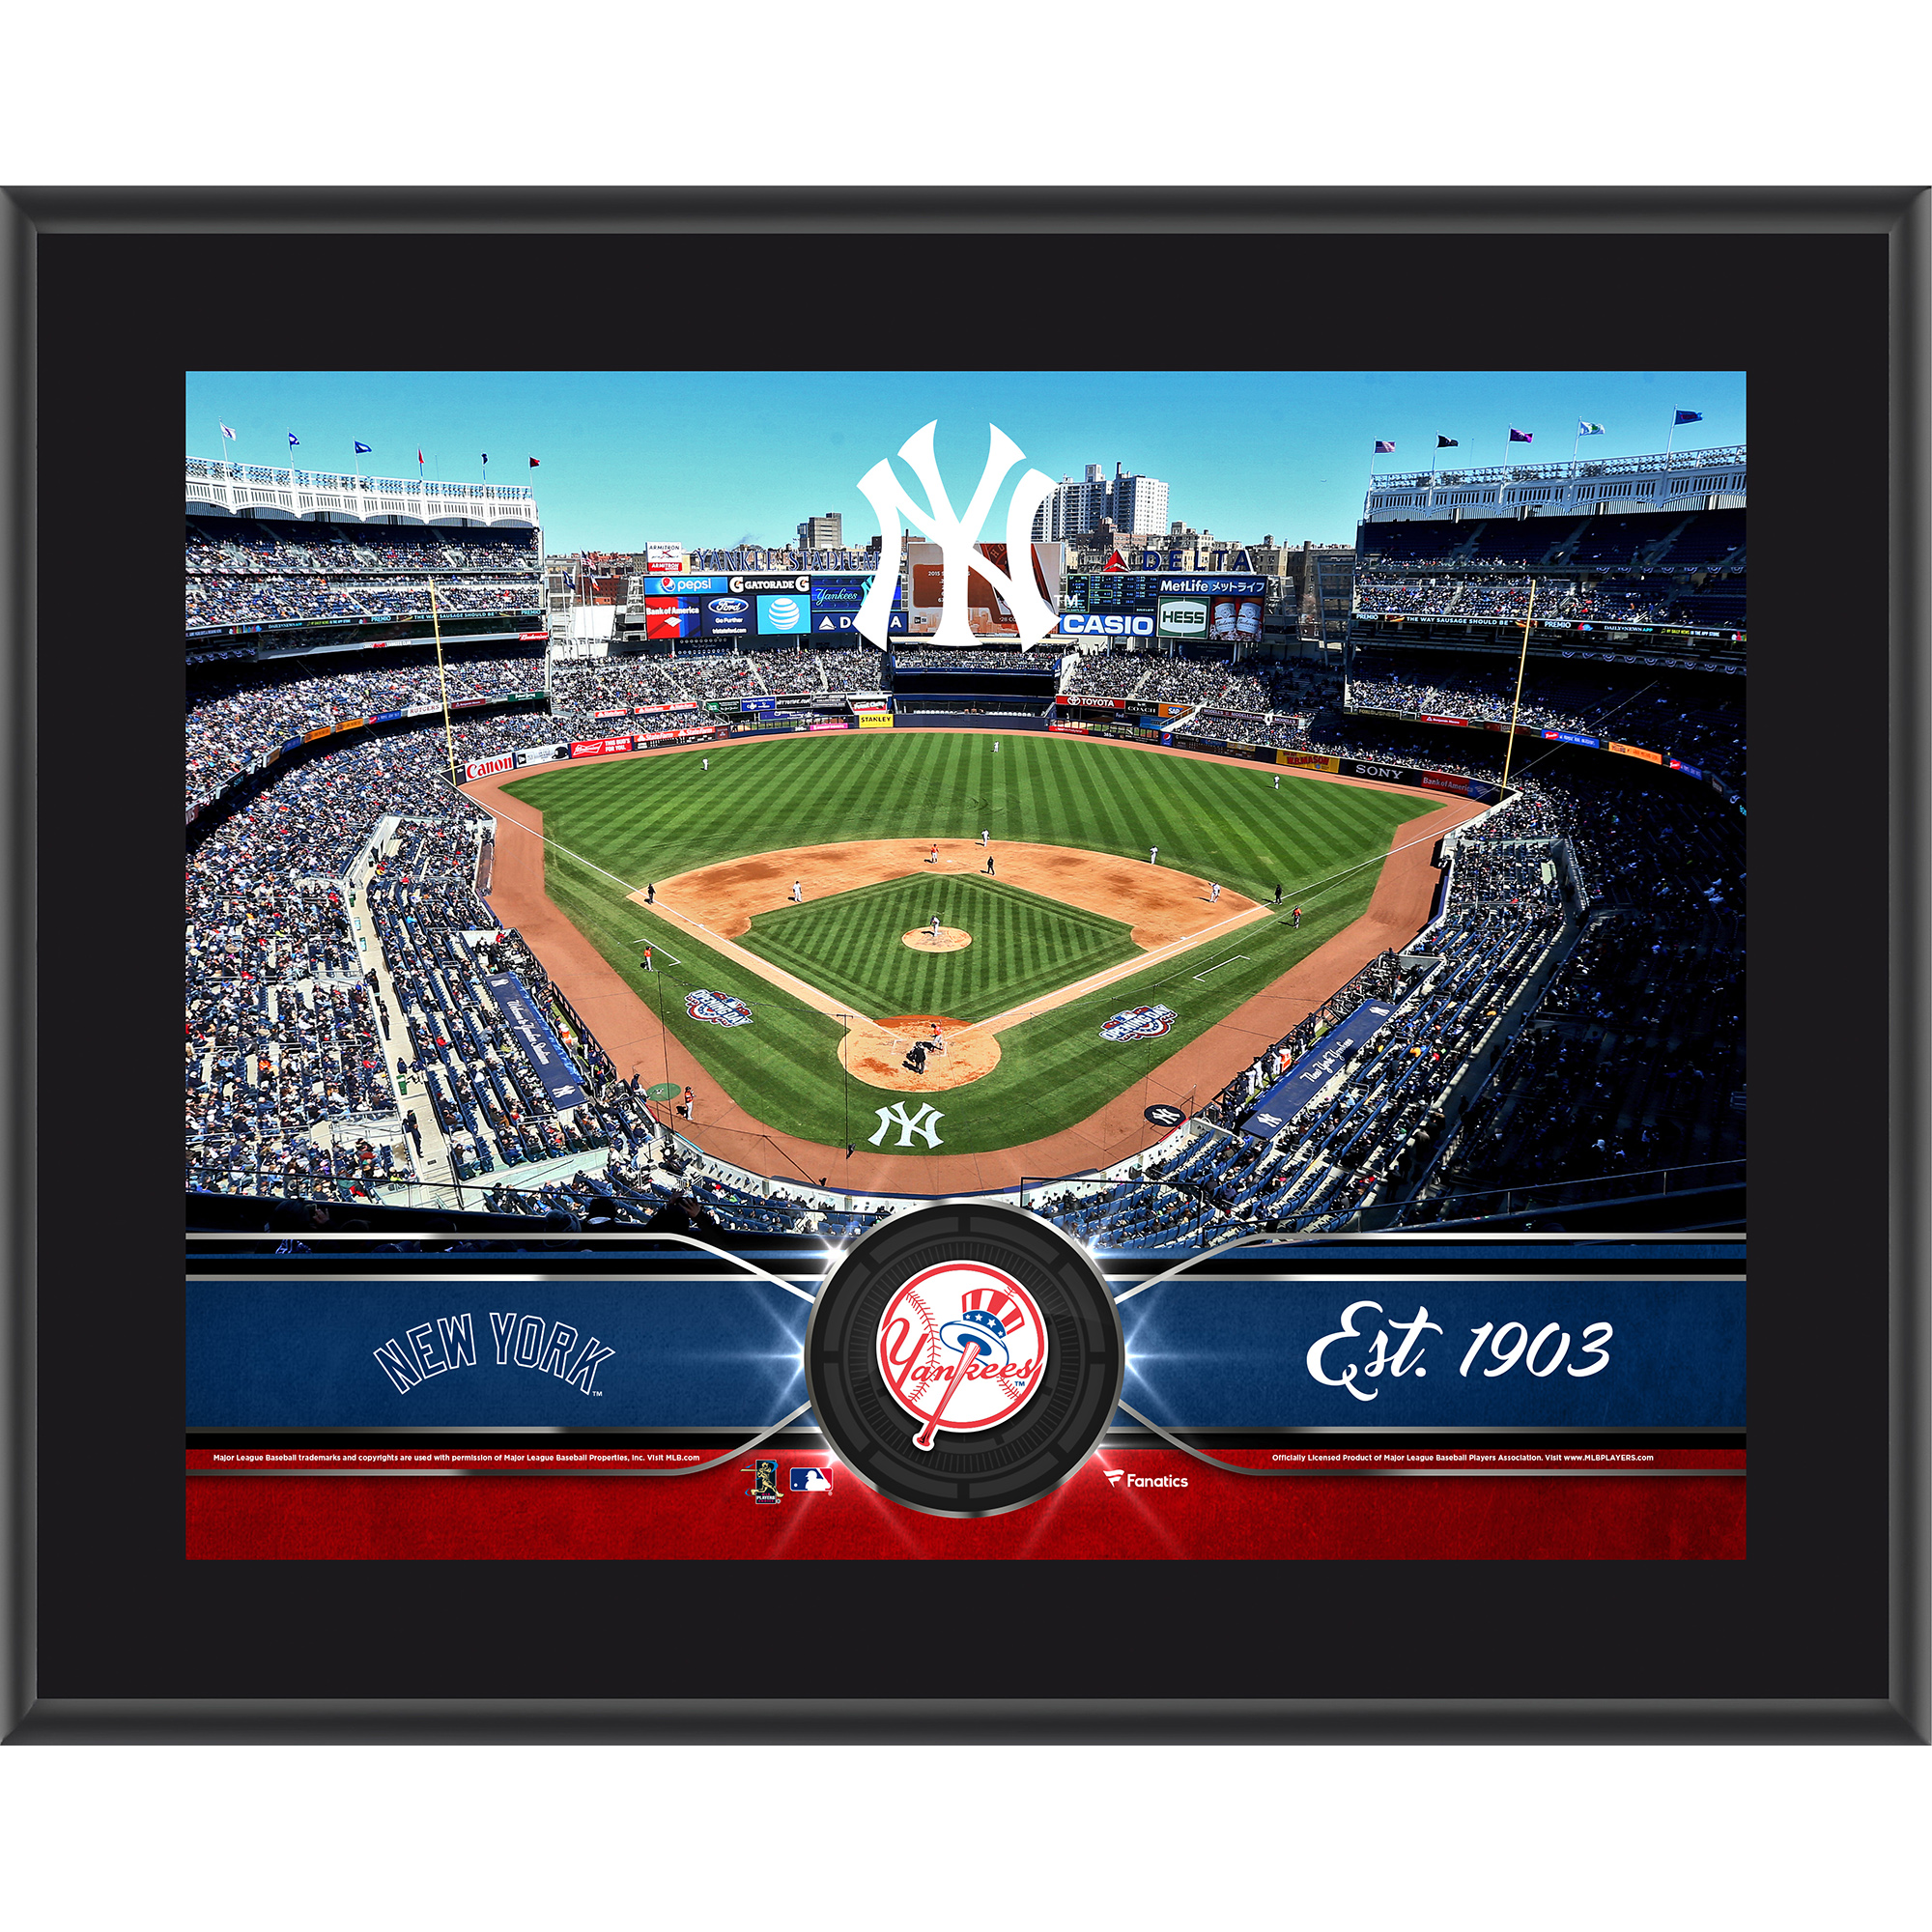 "New York Yankees Fanatics Authentic 10.5"" x 13"" Sublimated Team Plaque - No Size"